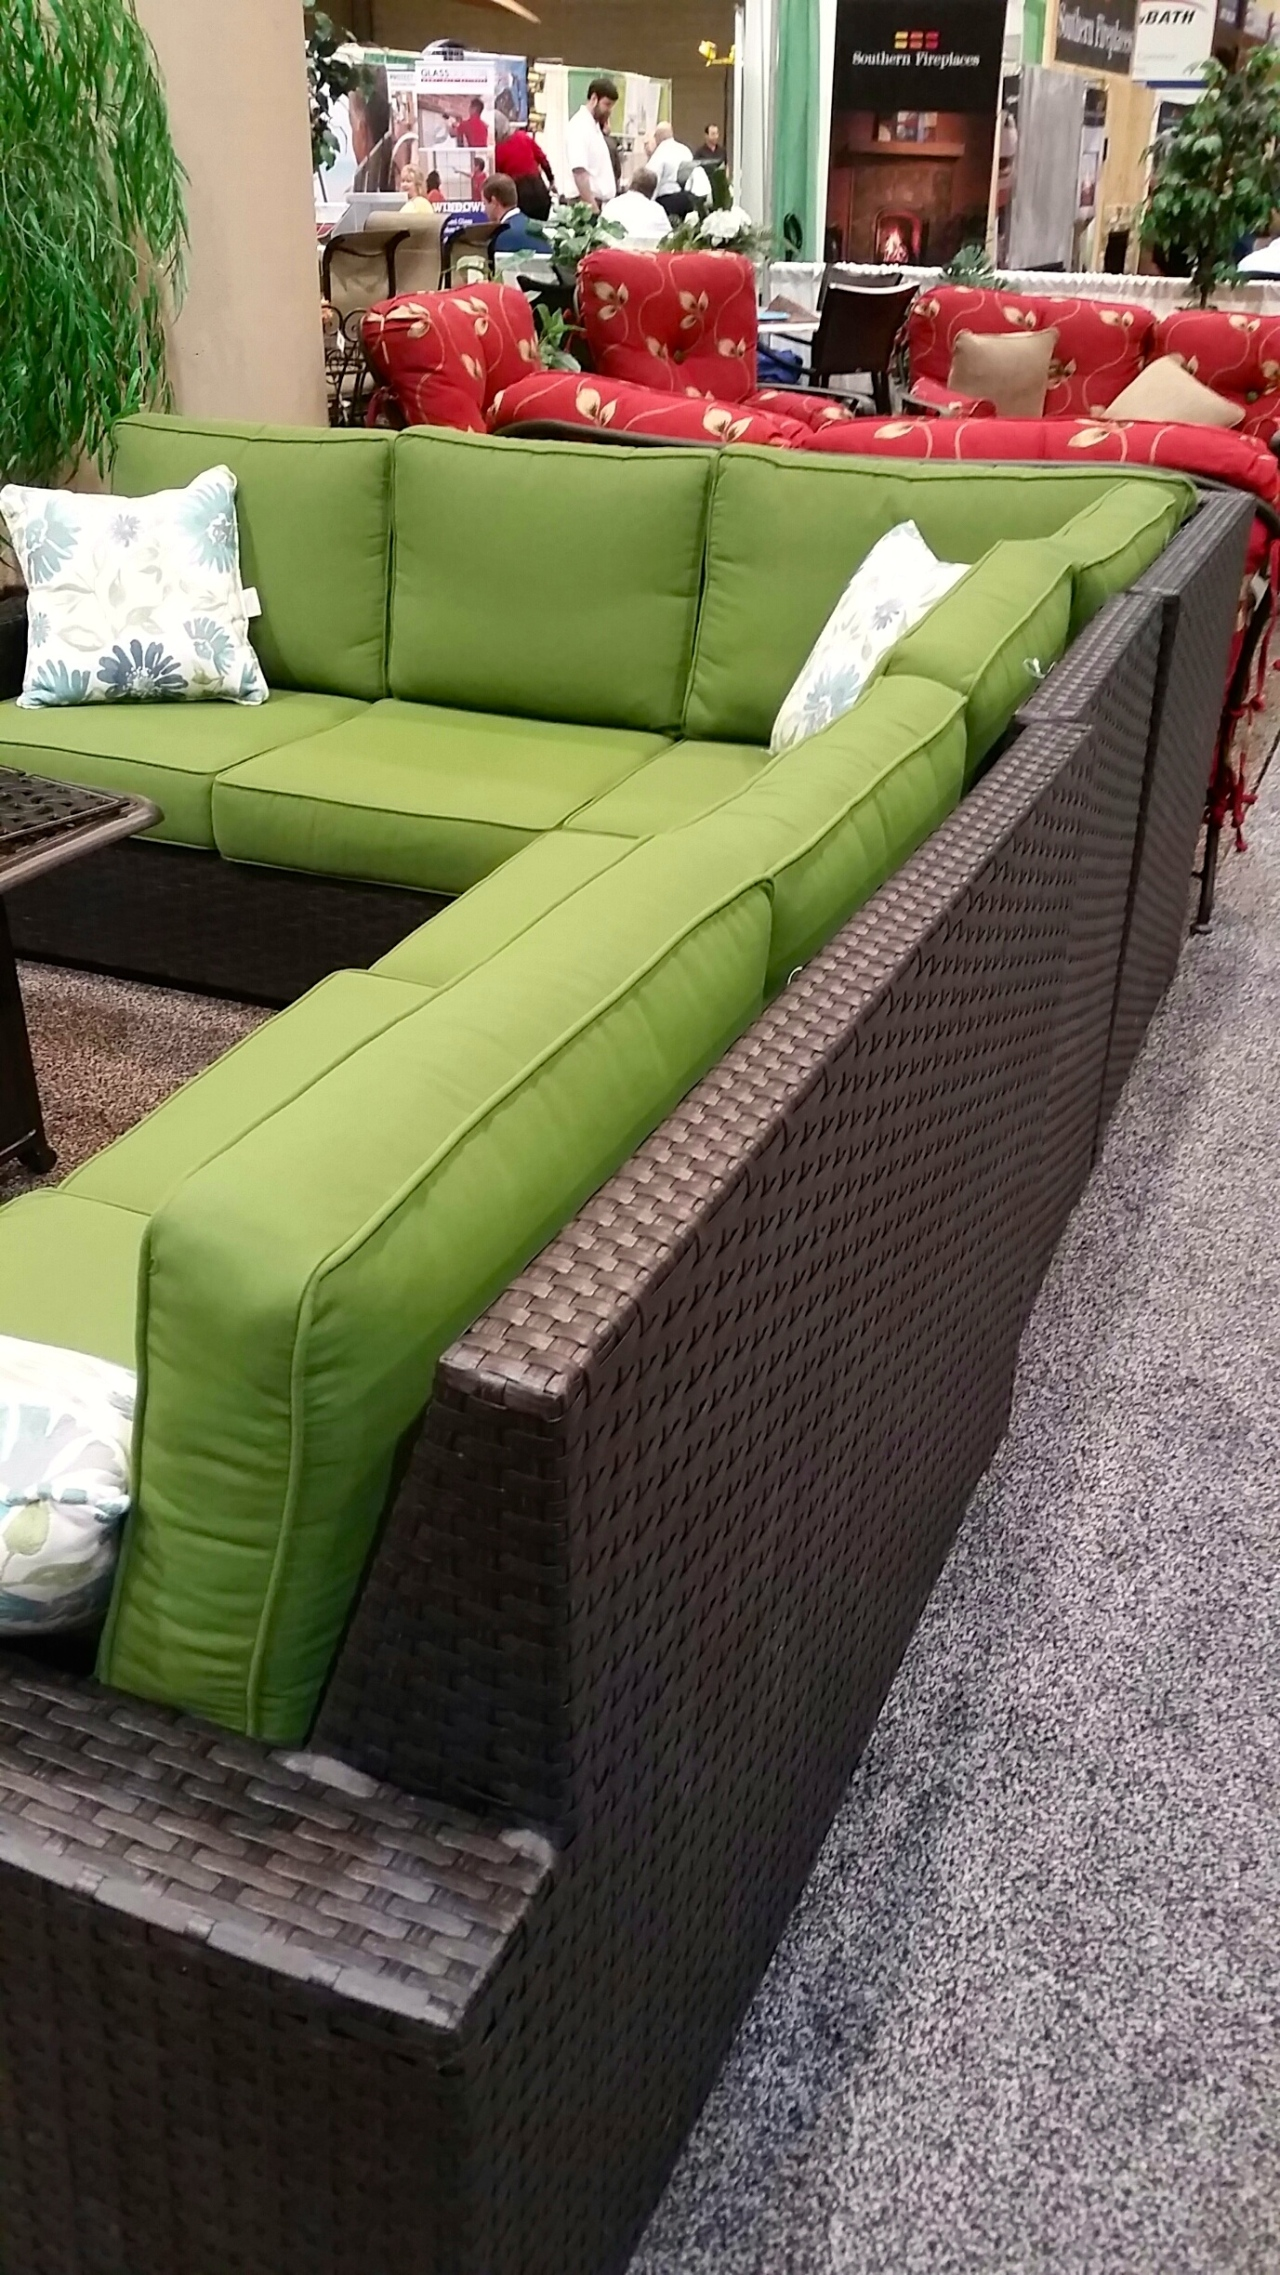 Lake Guntersville Pool & Patio had some pretty fabulous outdoor furniture and deals at the show.